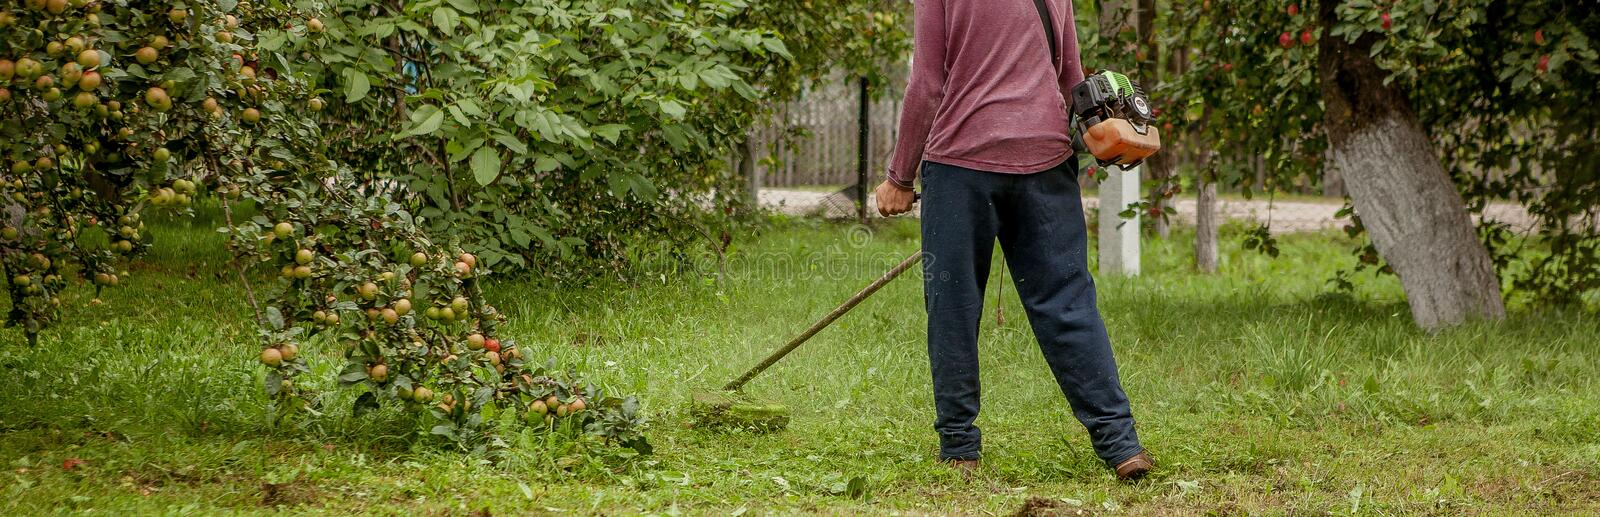 Gardener using machine cutting green grass in garden. Garden equipment. Young man mowing the grass with a trimmer stock image